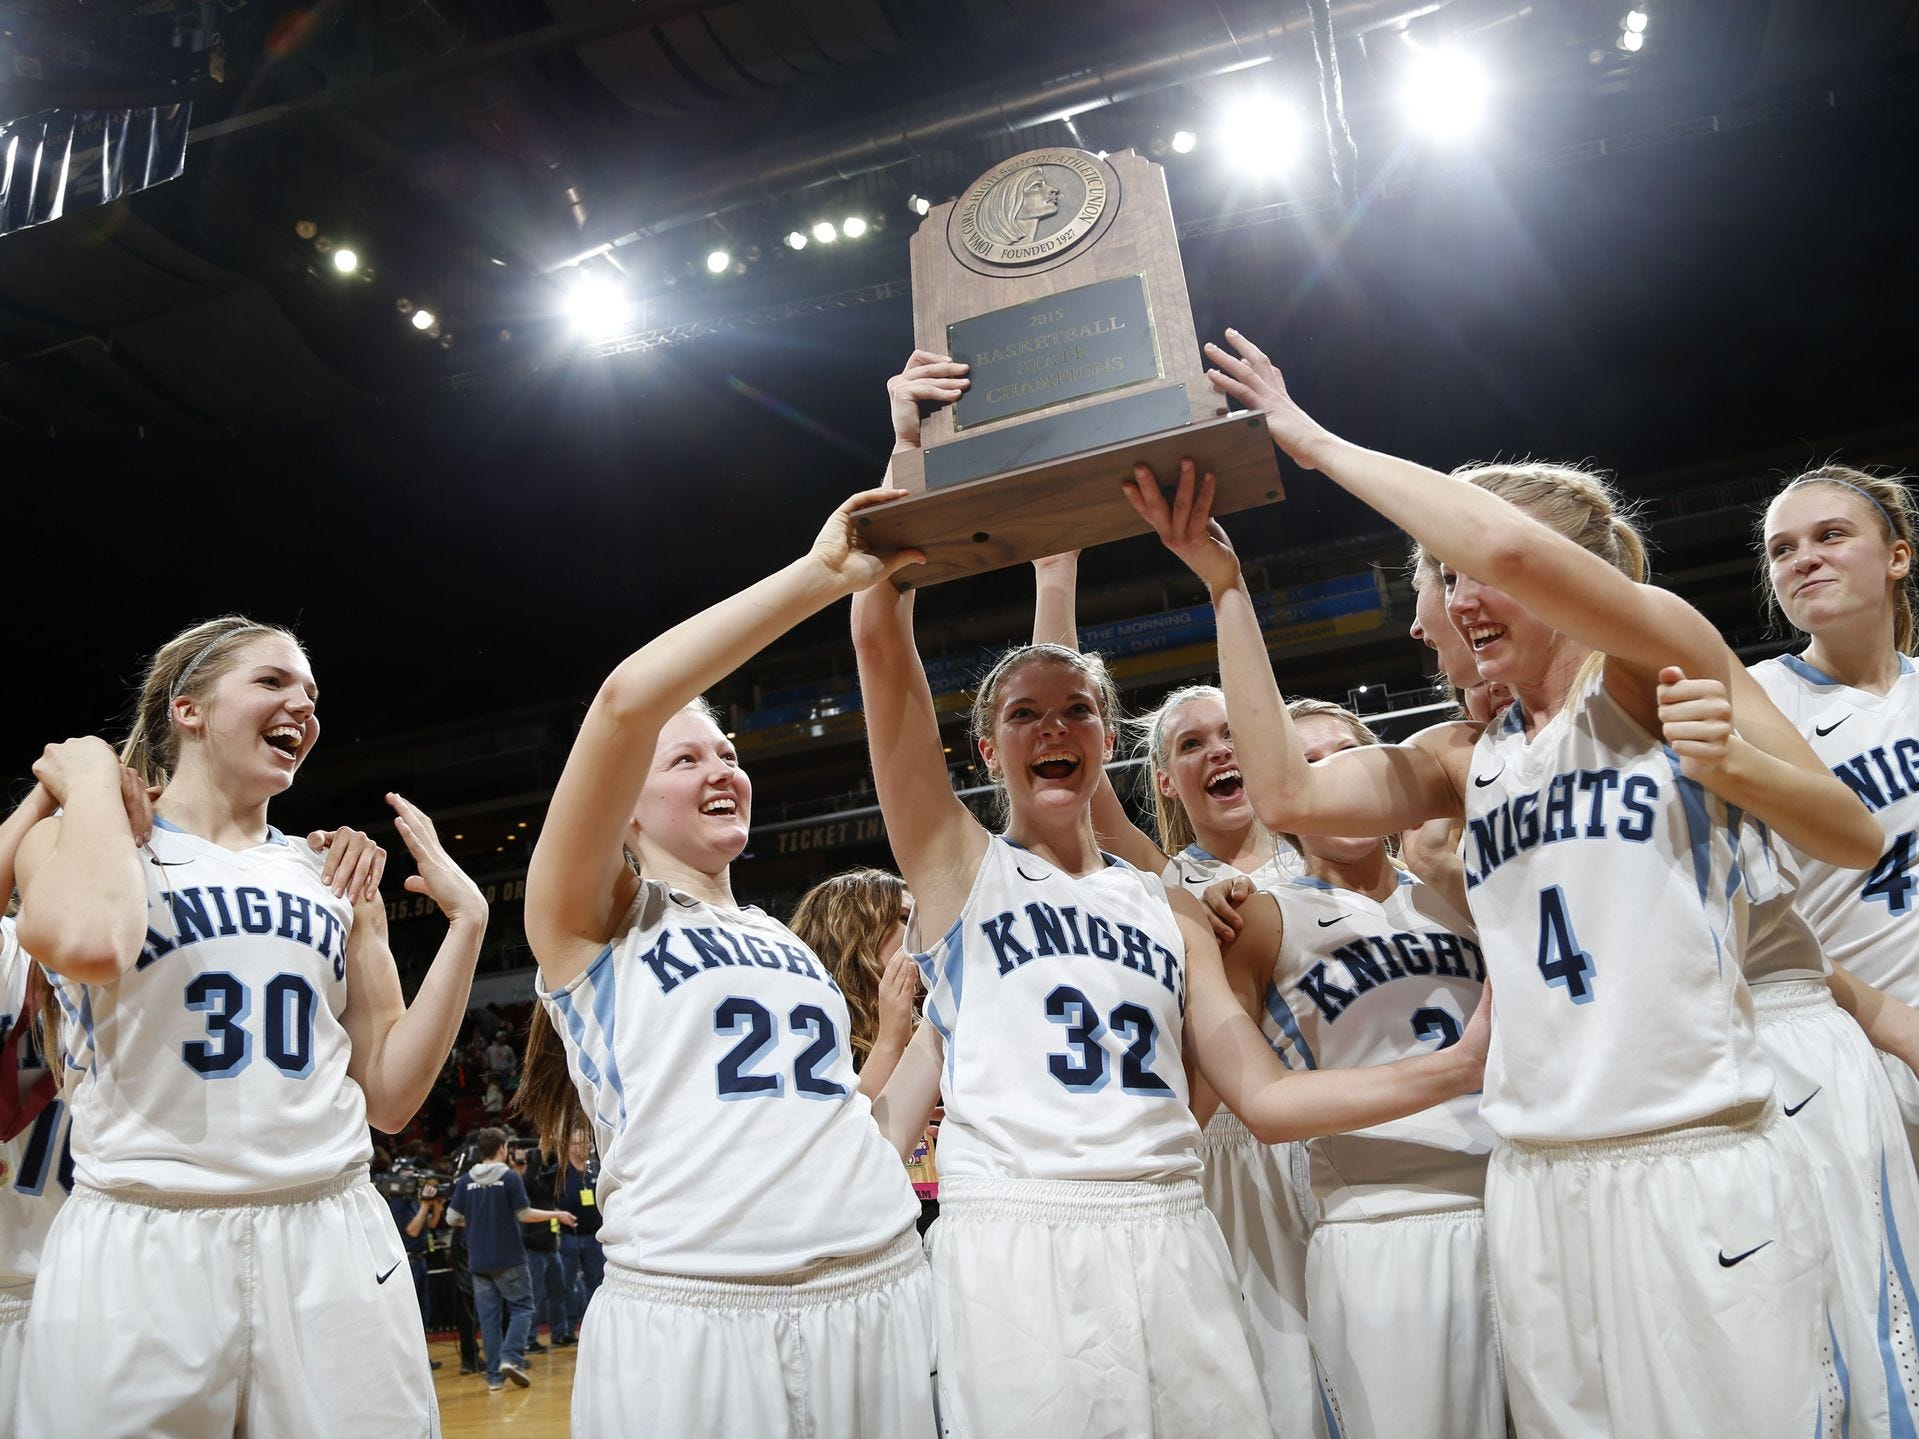 Unity Christian players celebrate their 2A state title win over North Linn Friday, March 6, 2015 at Girls State Basketball Tournament at Wells Fargo Arena in Des Moines. Michael Zamora/The Register